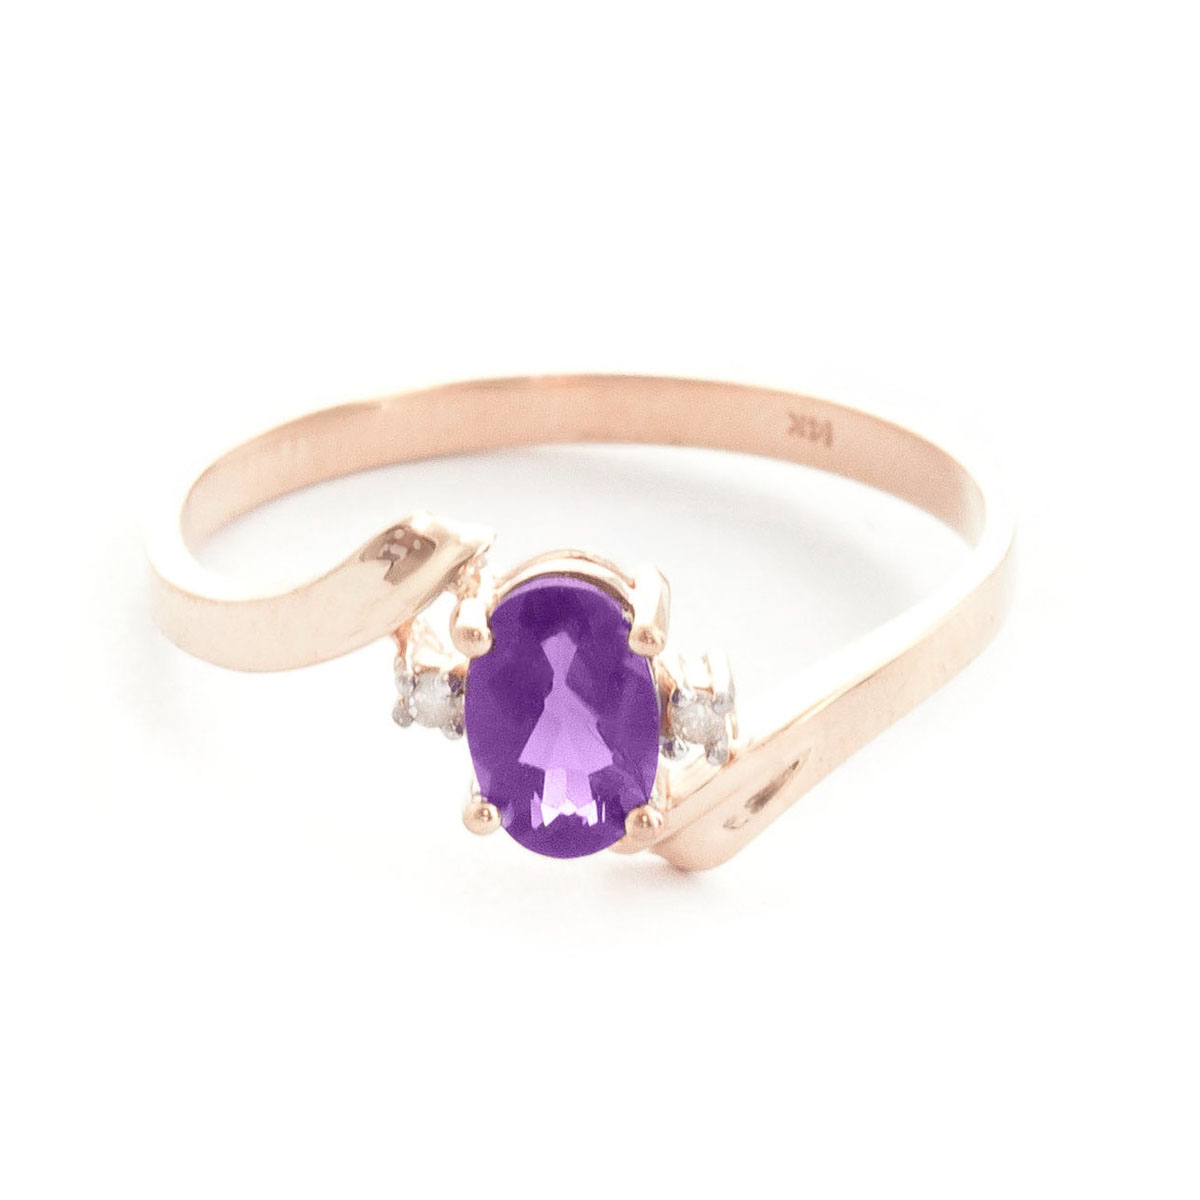 Amethyst & Diamond Embrace Ring in 9ct Rose Gold